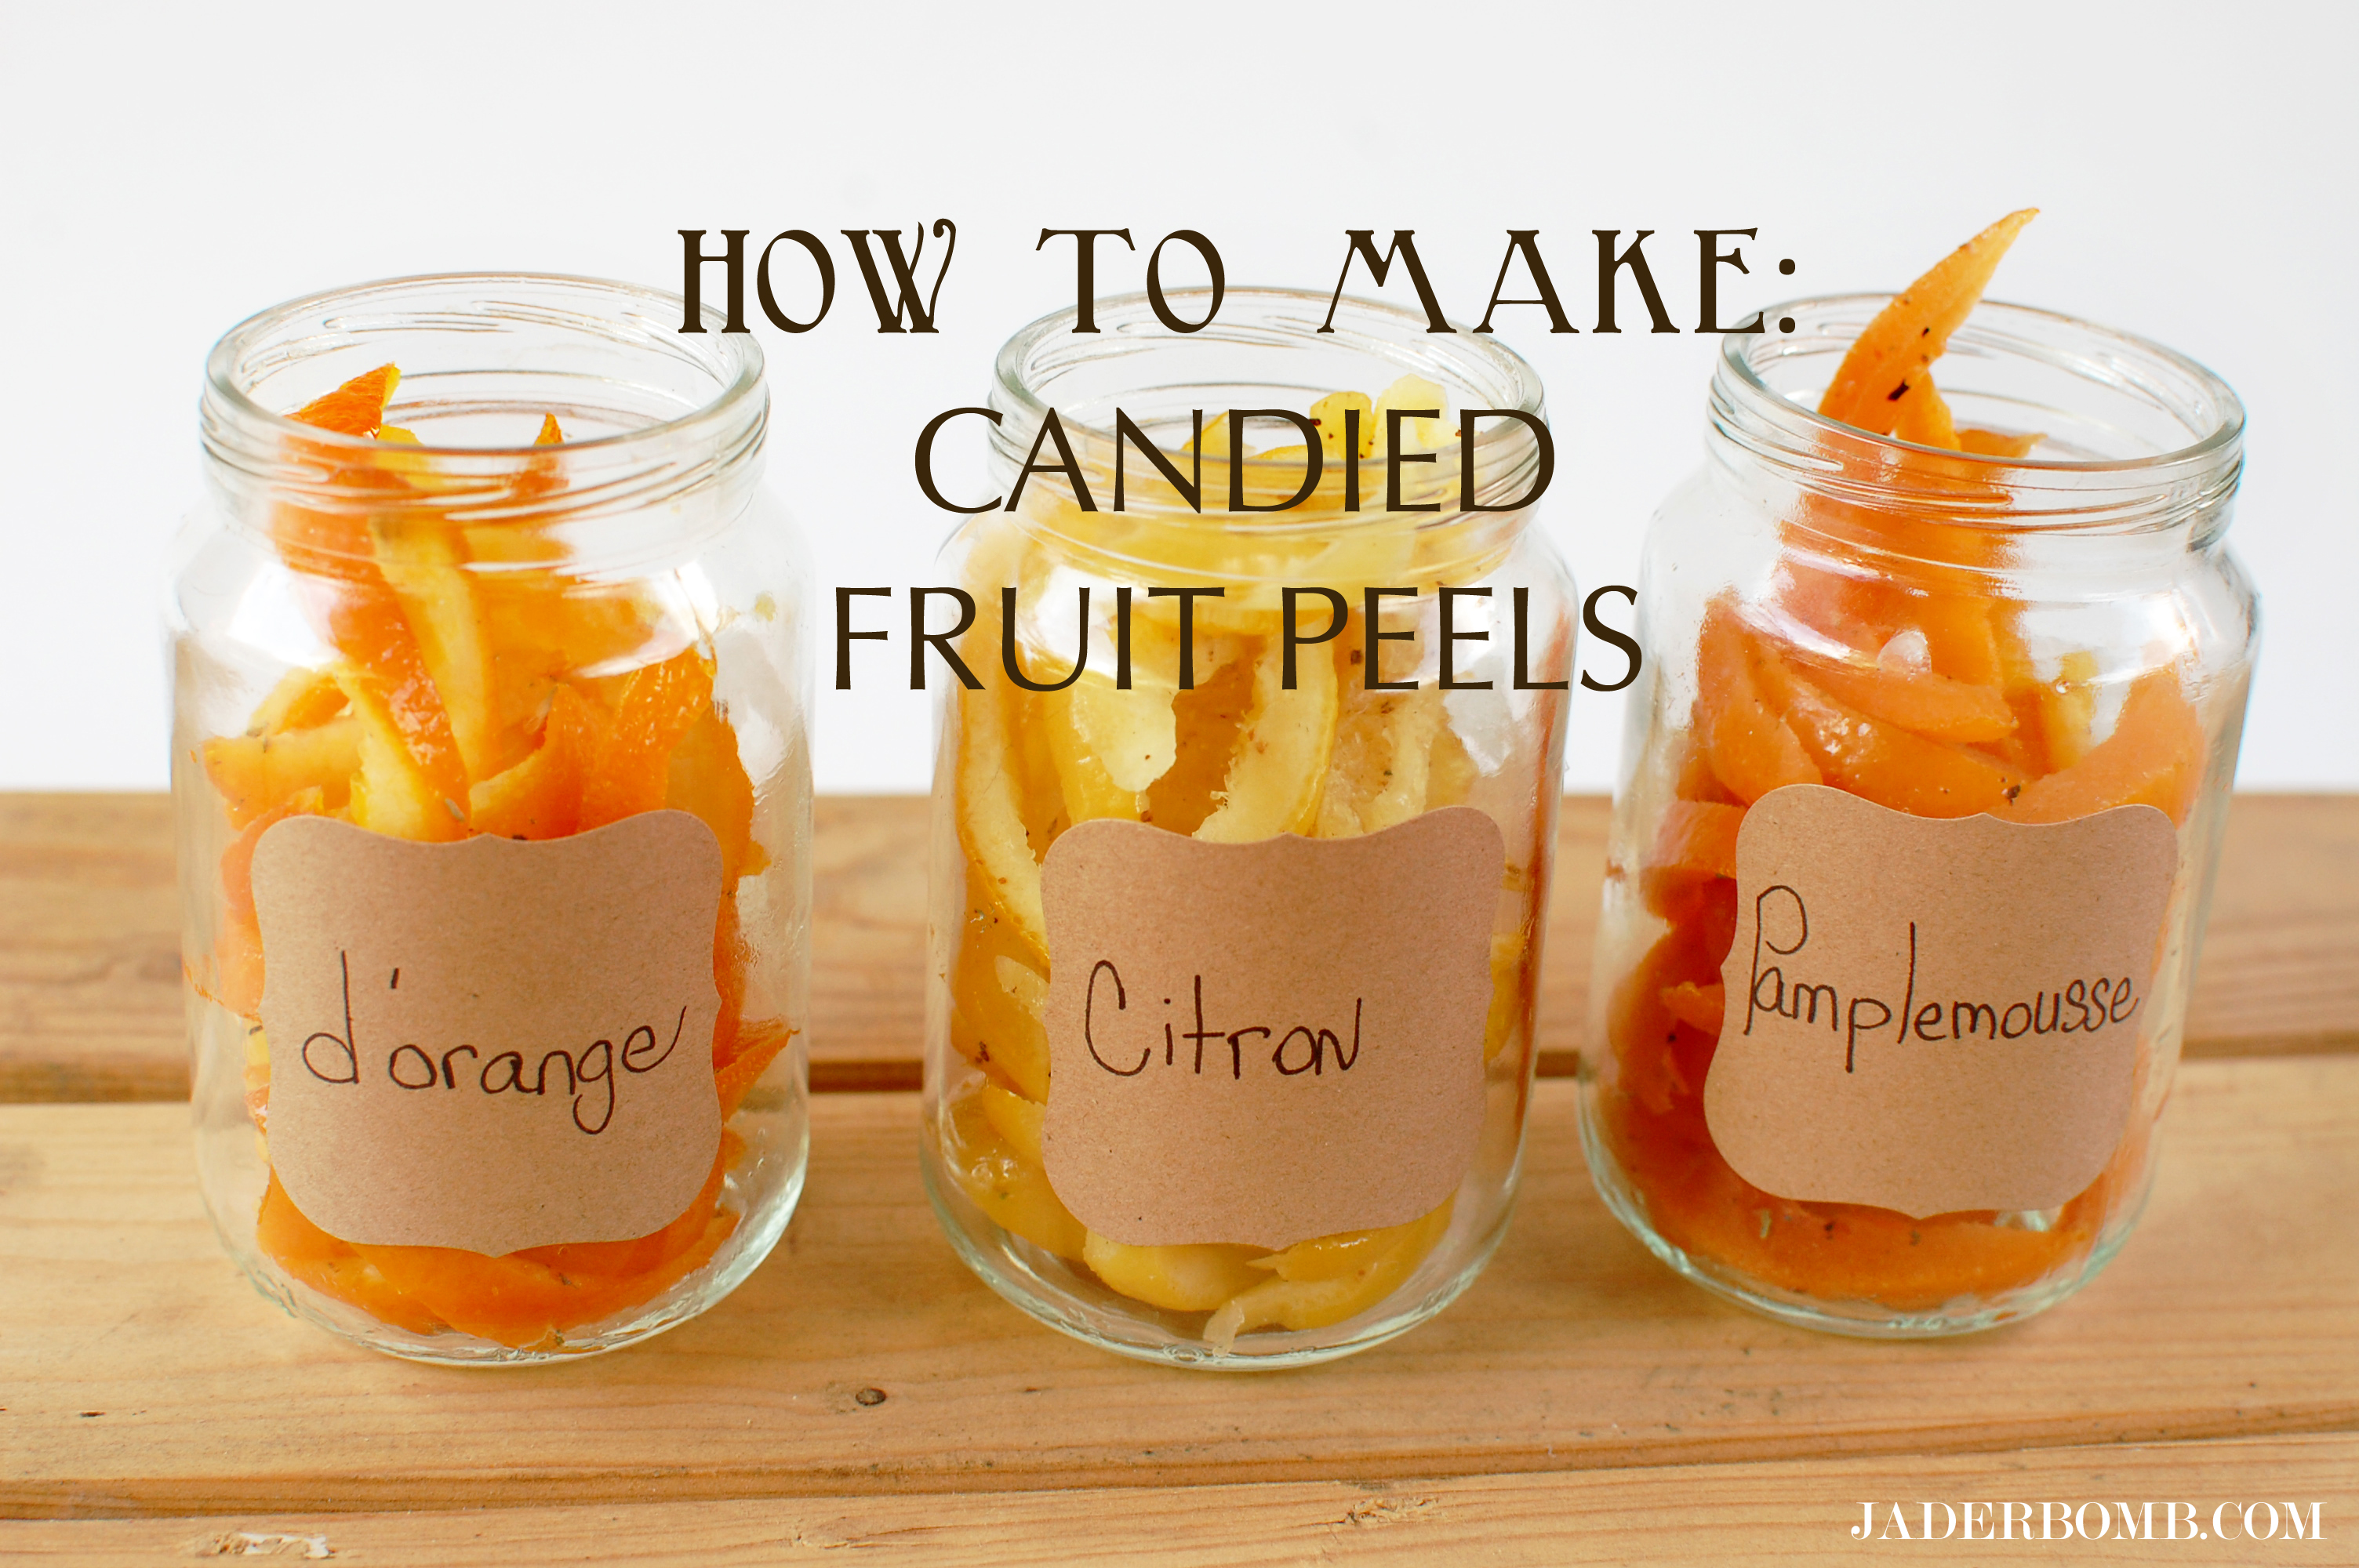 How to make Candied Citrus Peel - Tutorial - JADERBOMB